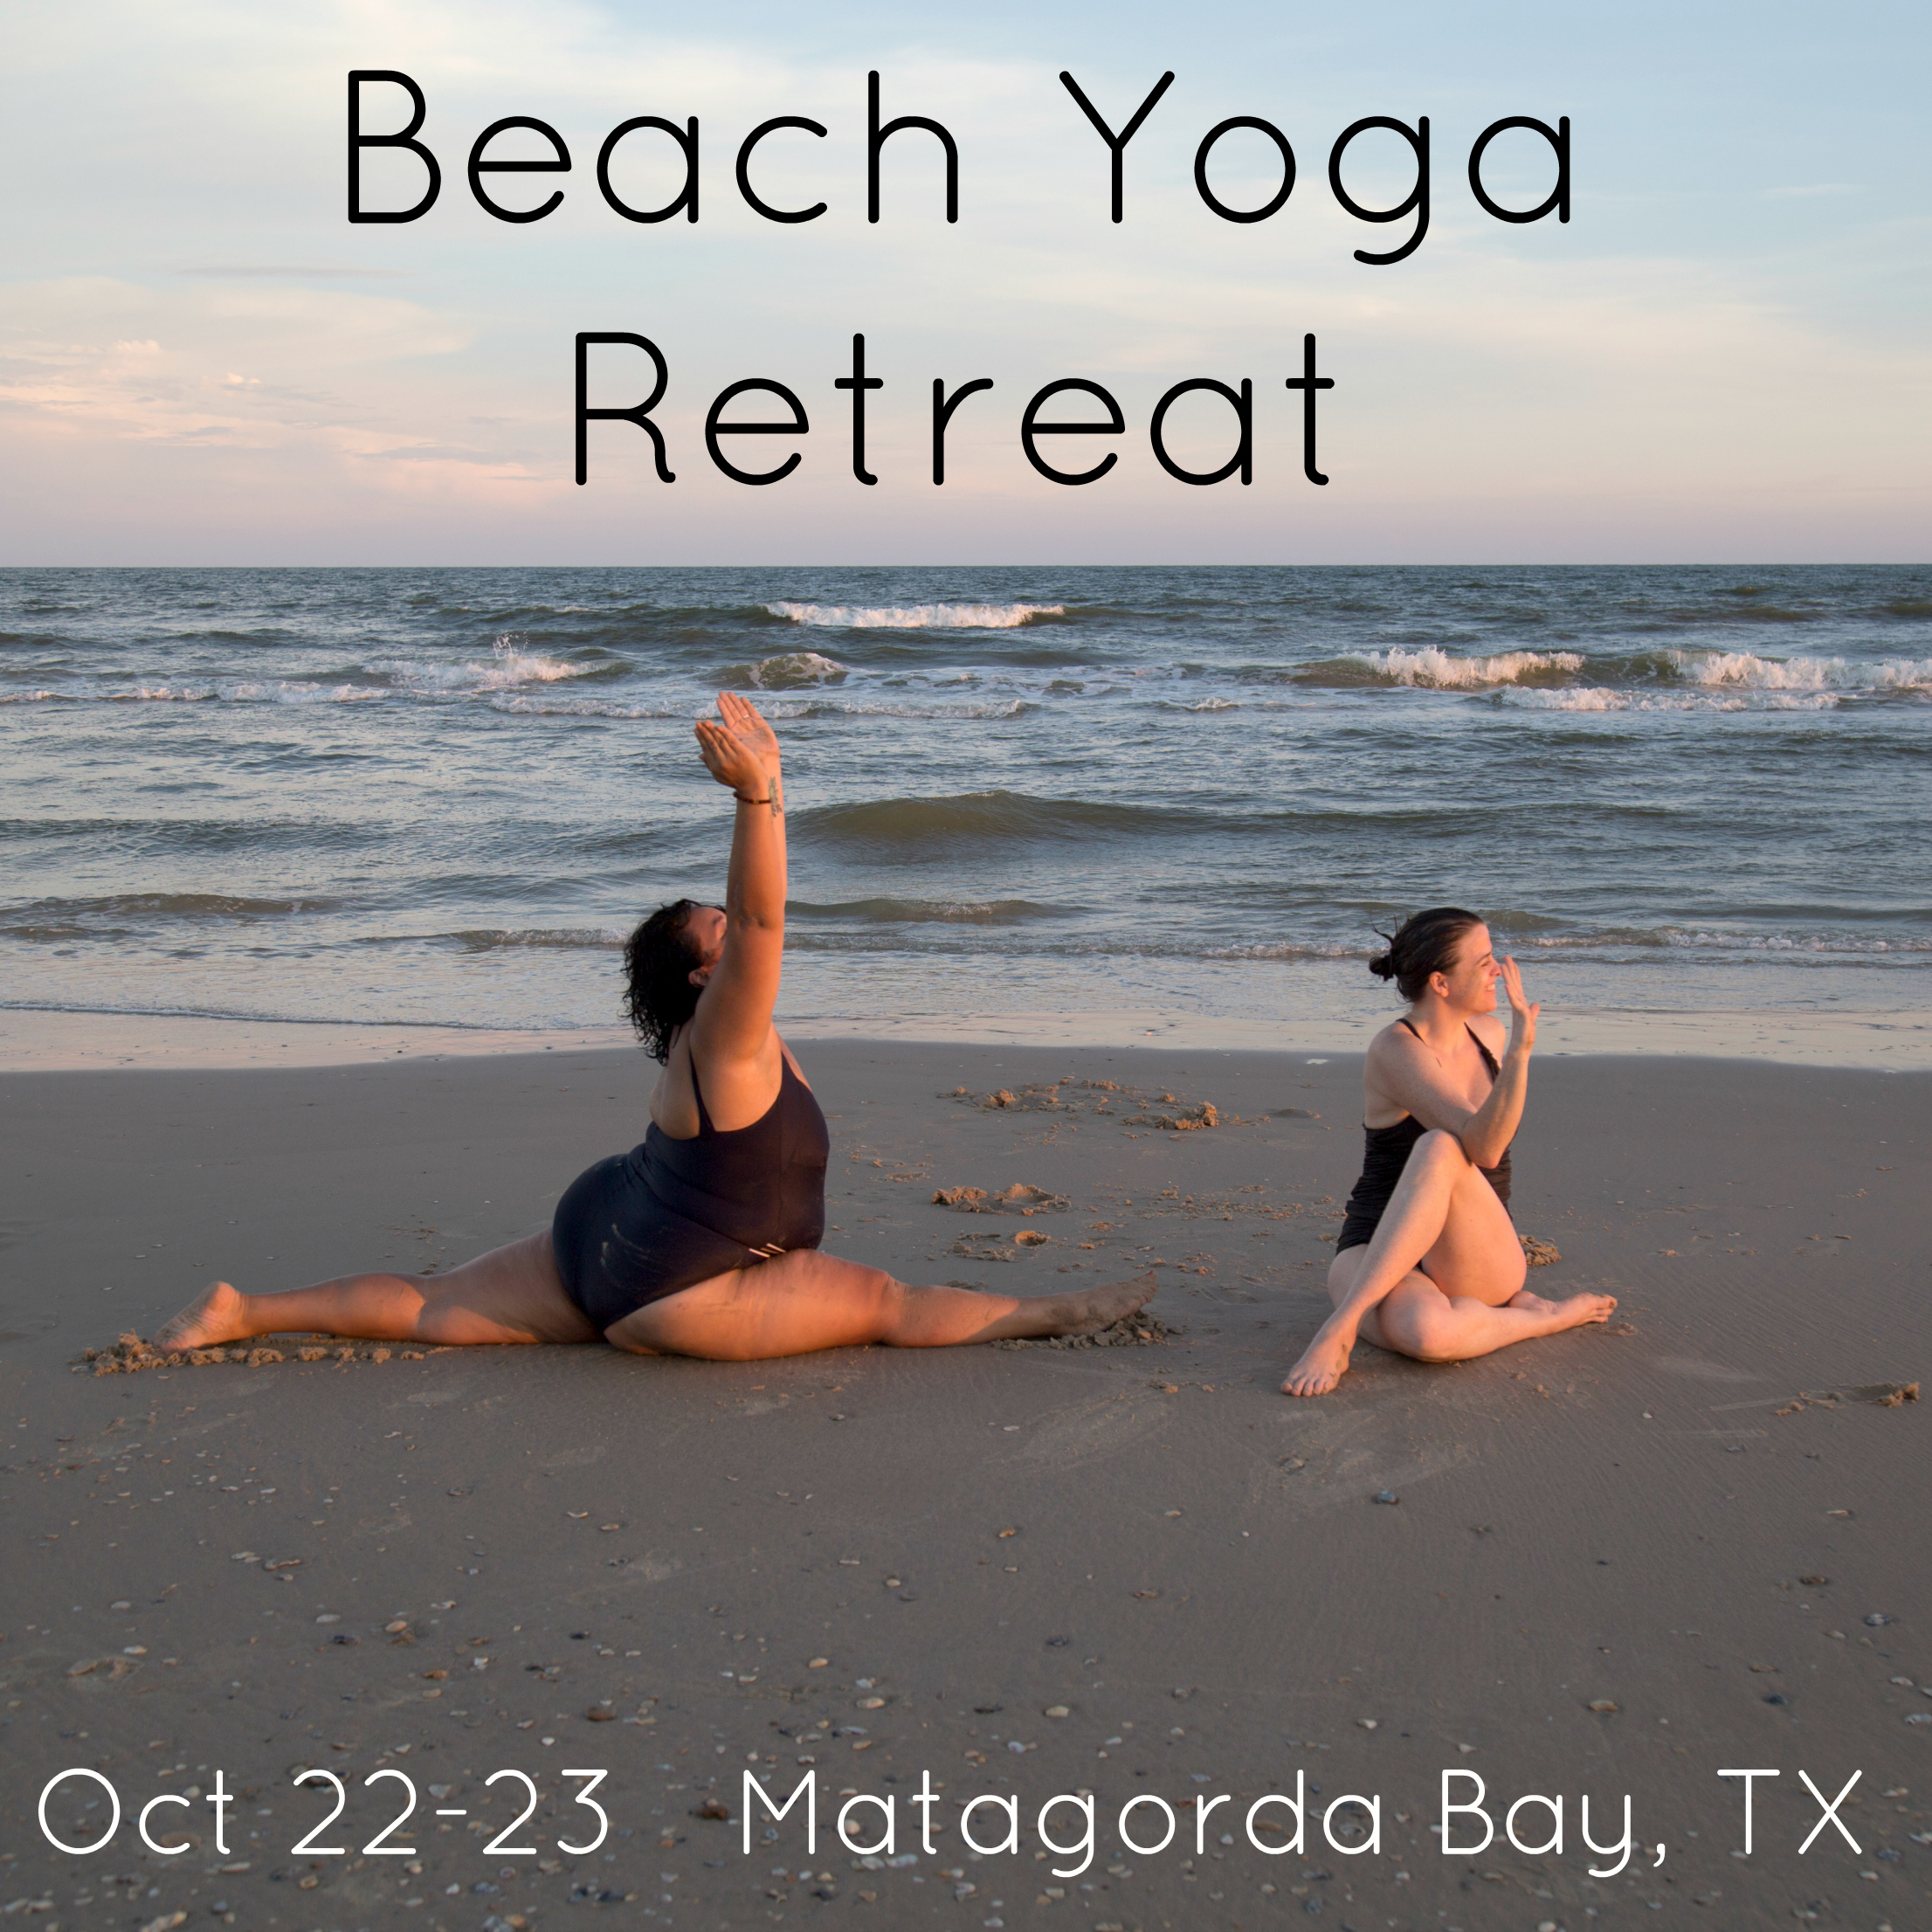 Beach Yoga Retreat